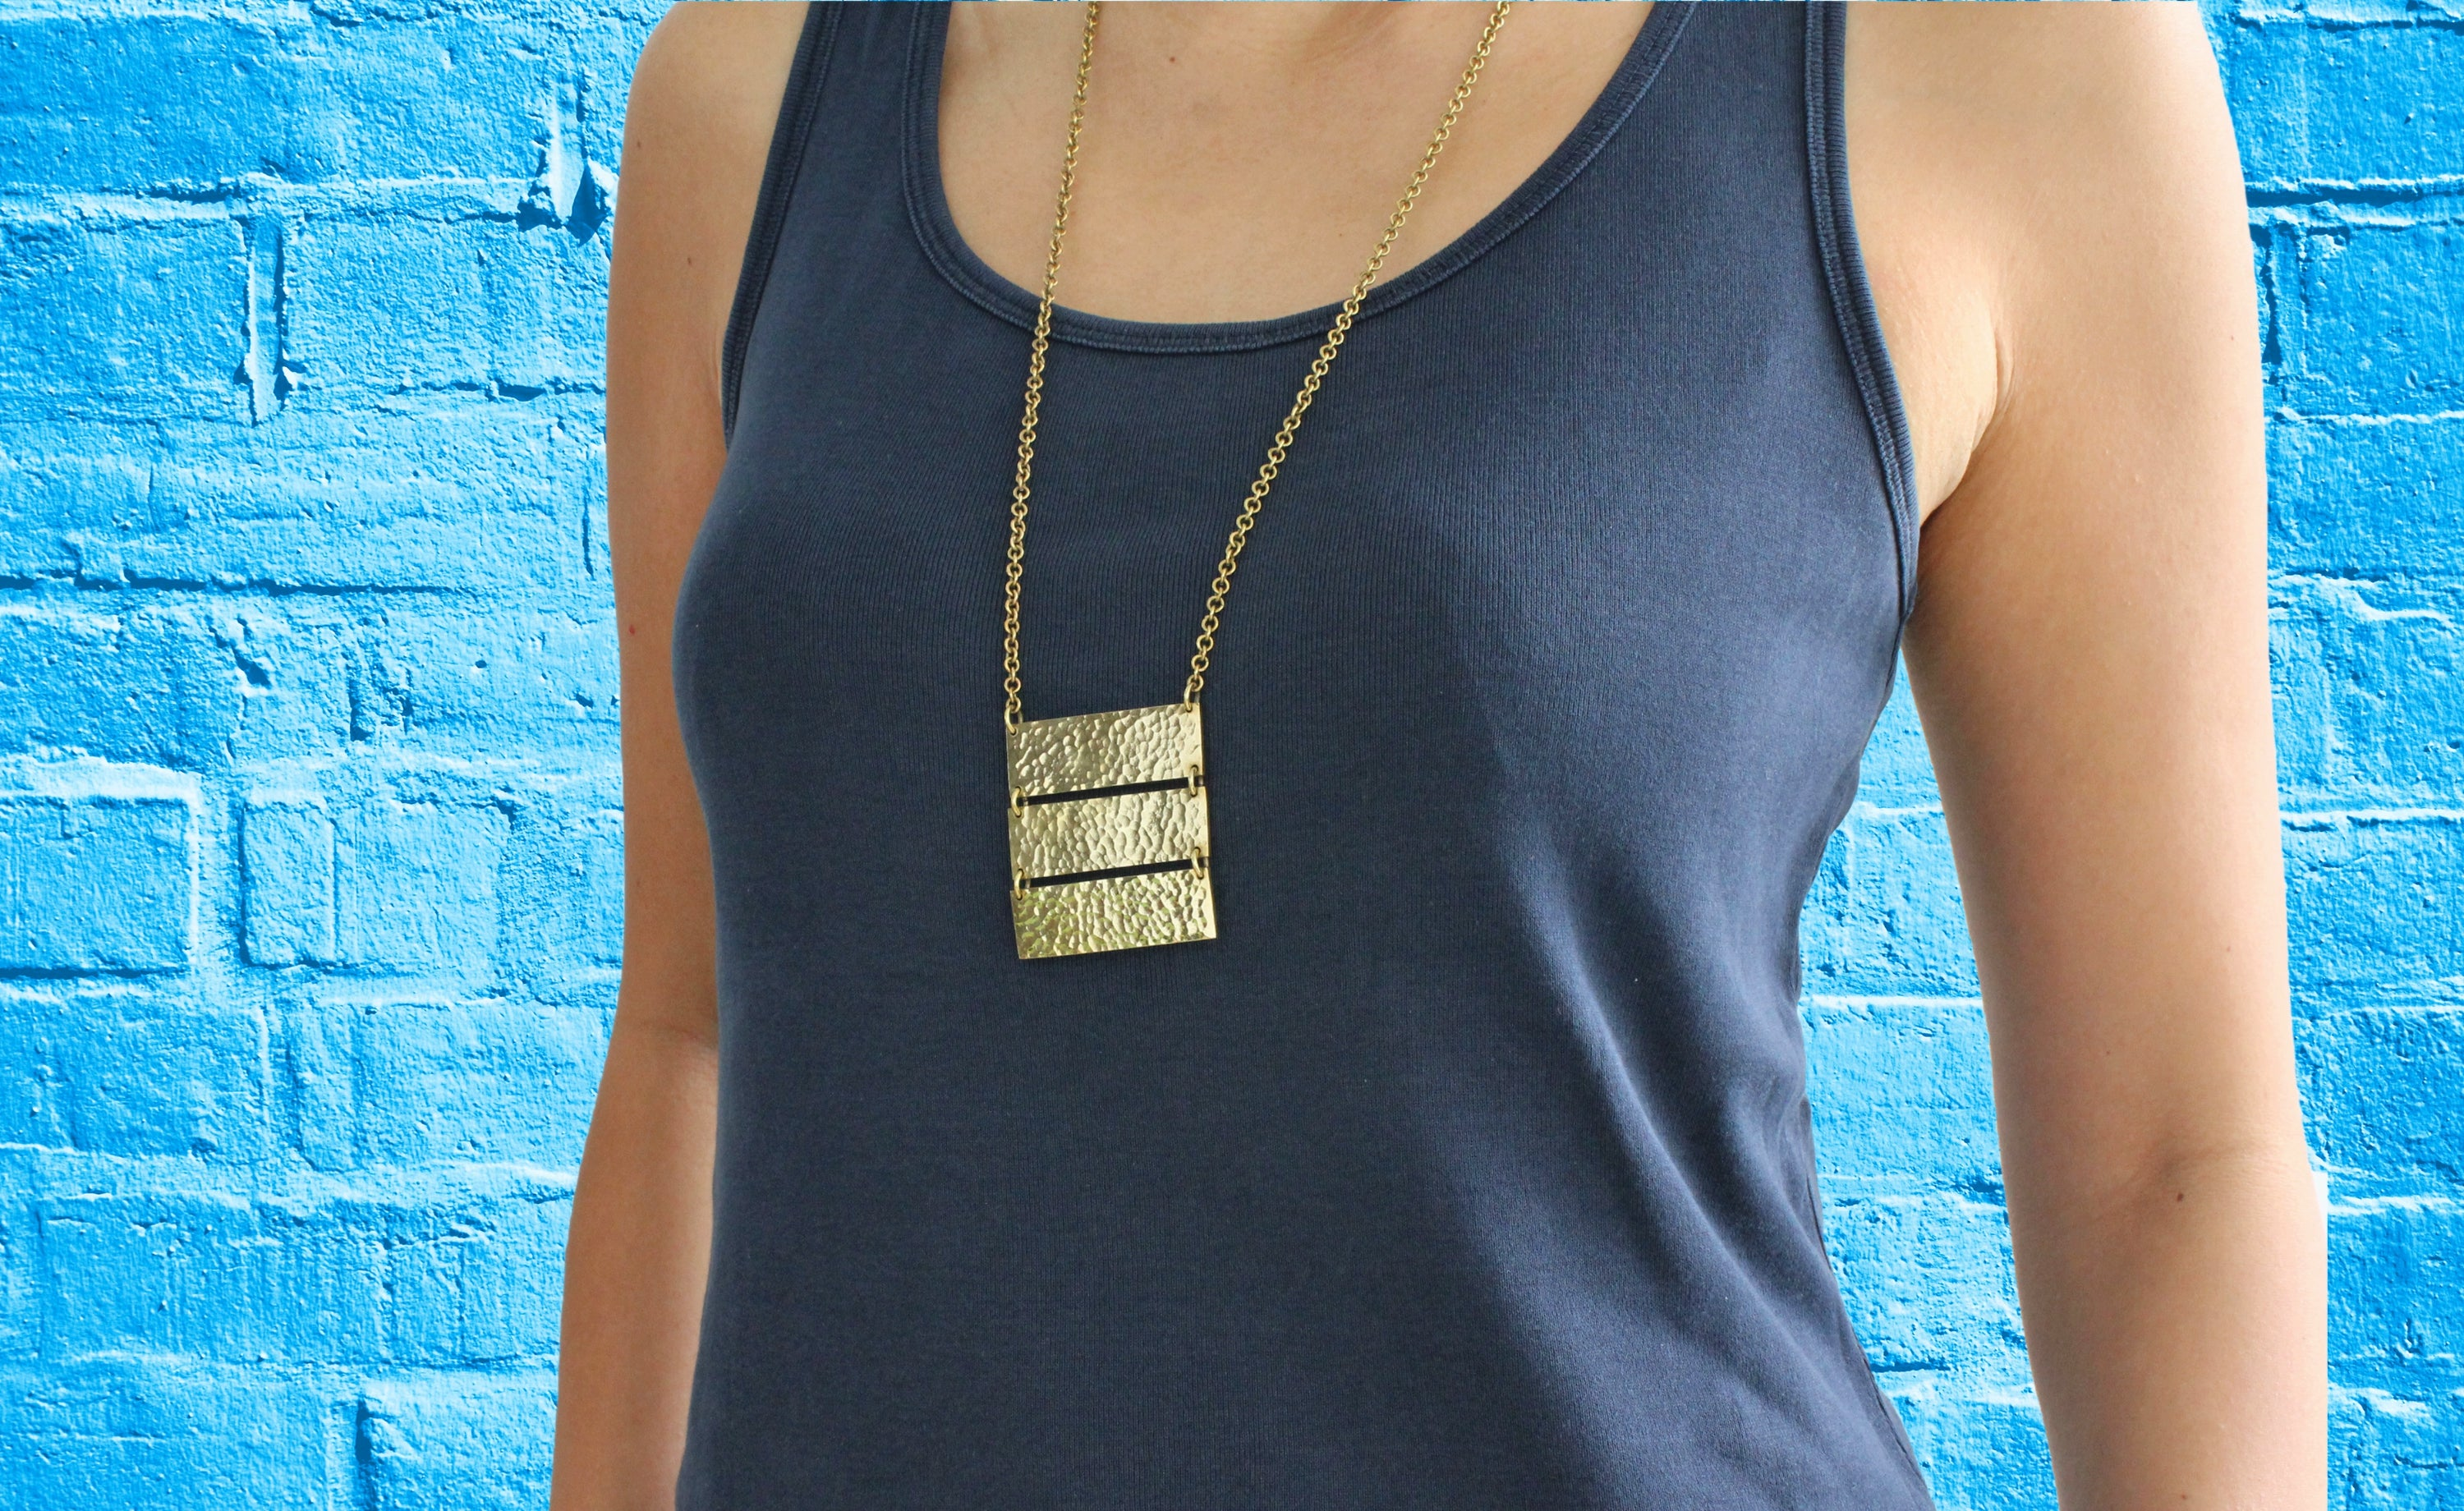 African handmade necklace three bars body blue brick